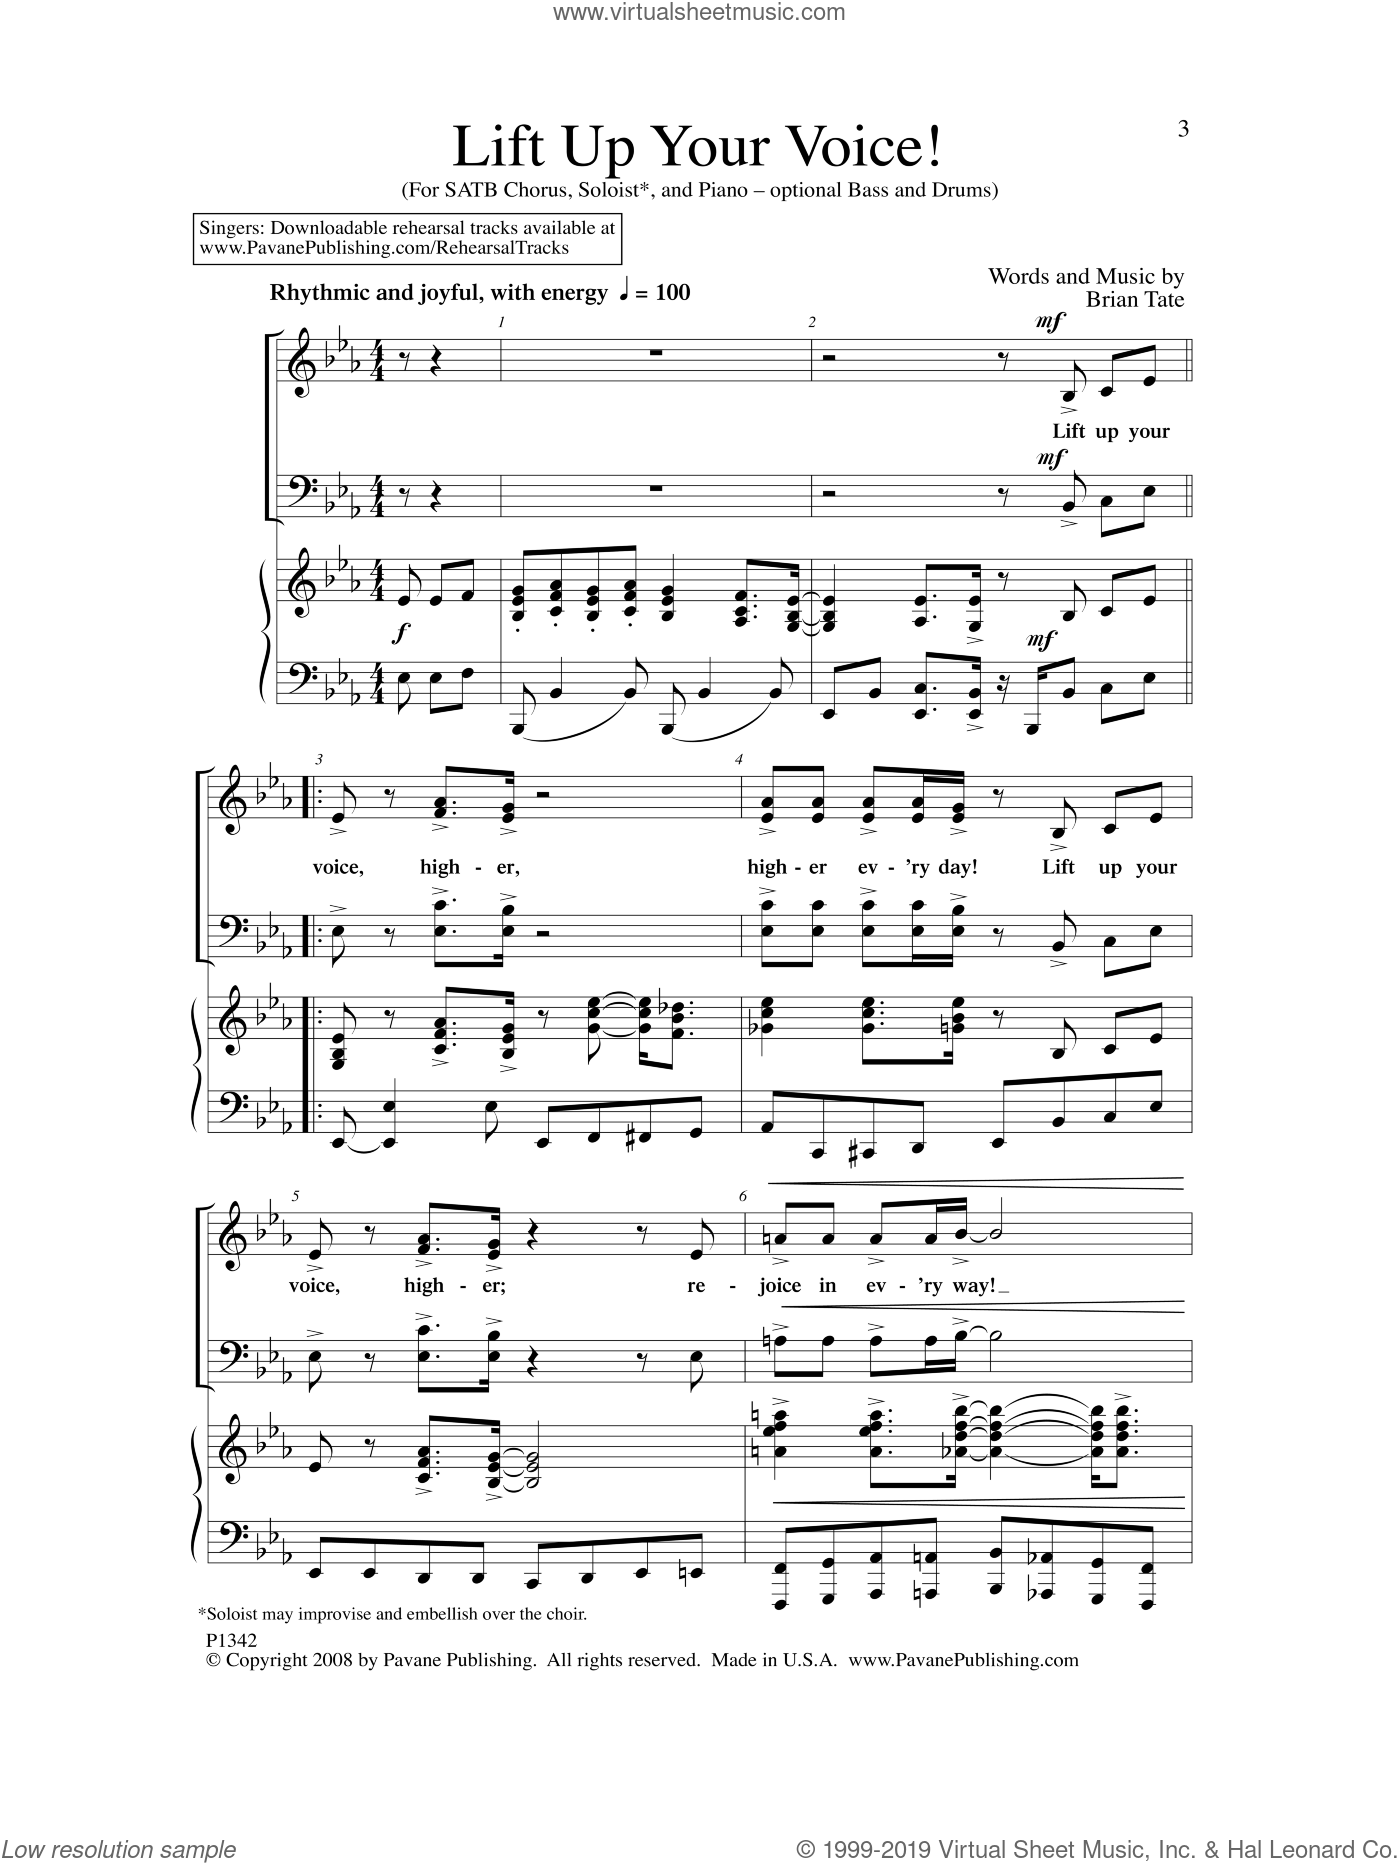 Lift Up Your Voice sheet music for choir by Brian Tate. Score Image Preview.